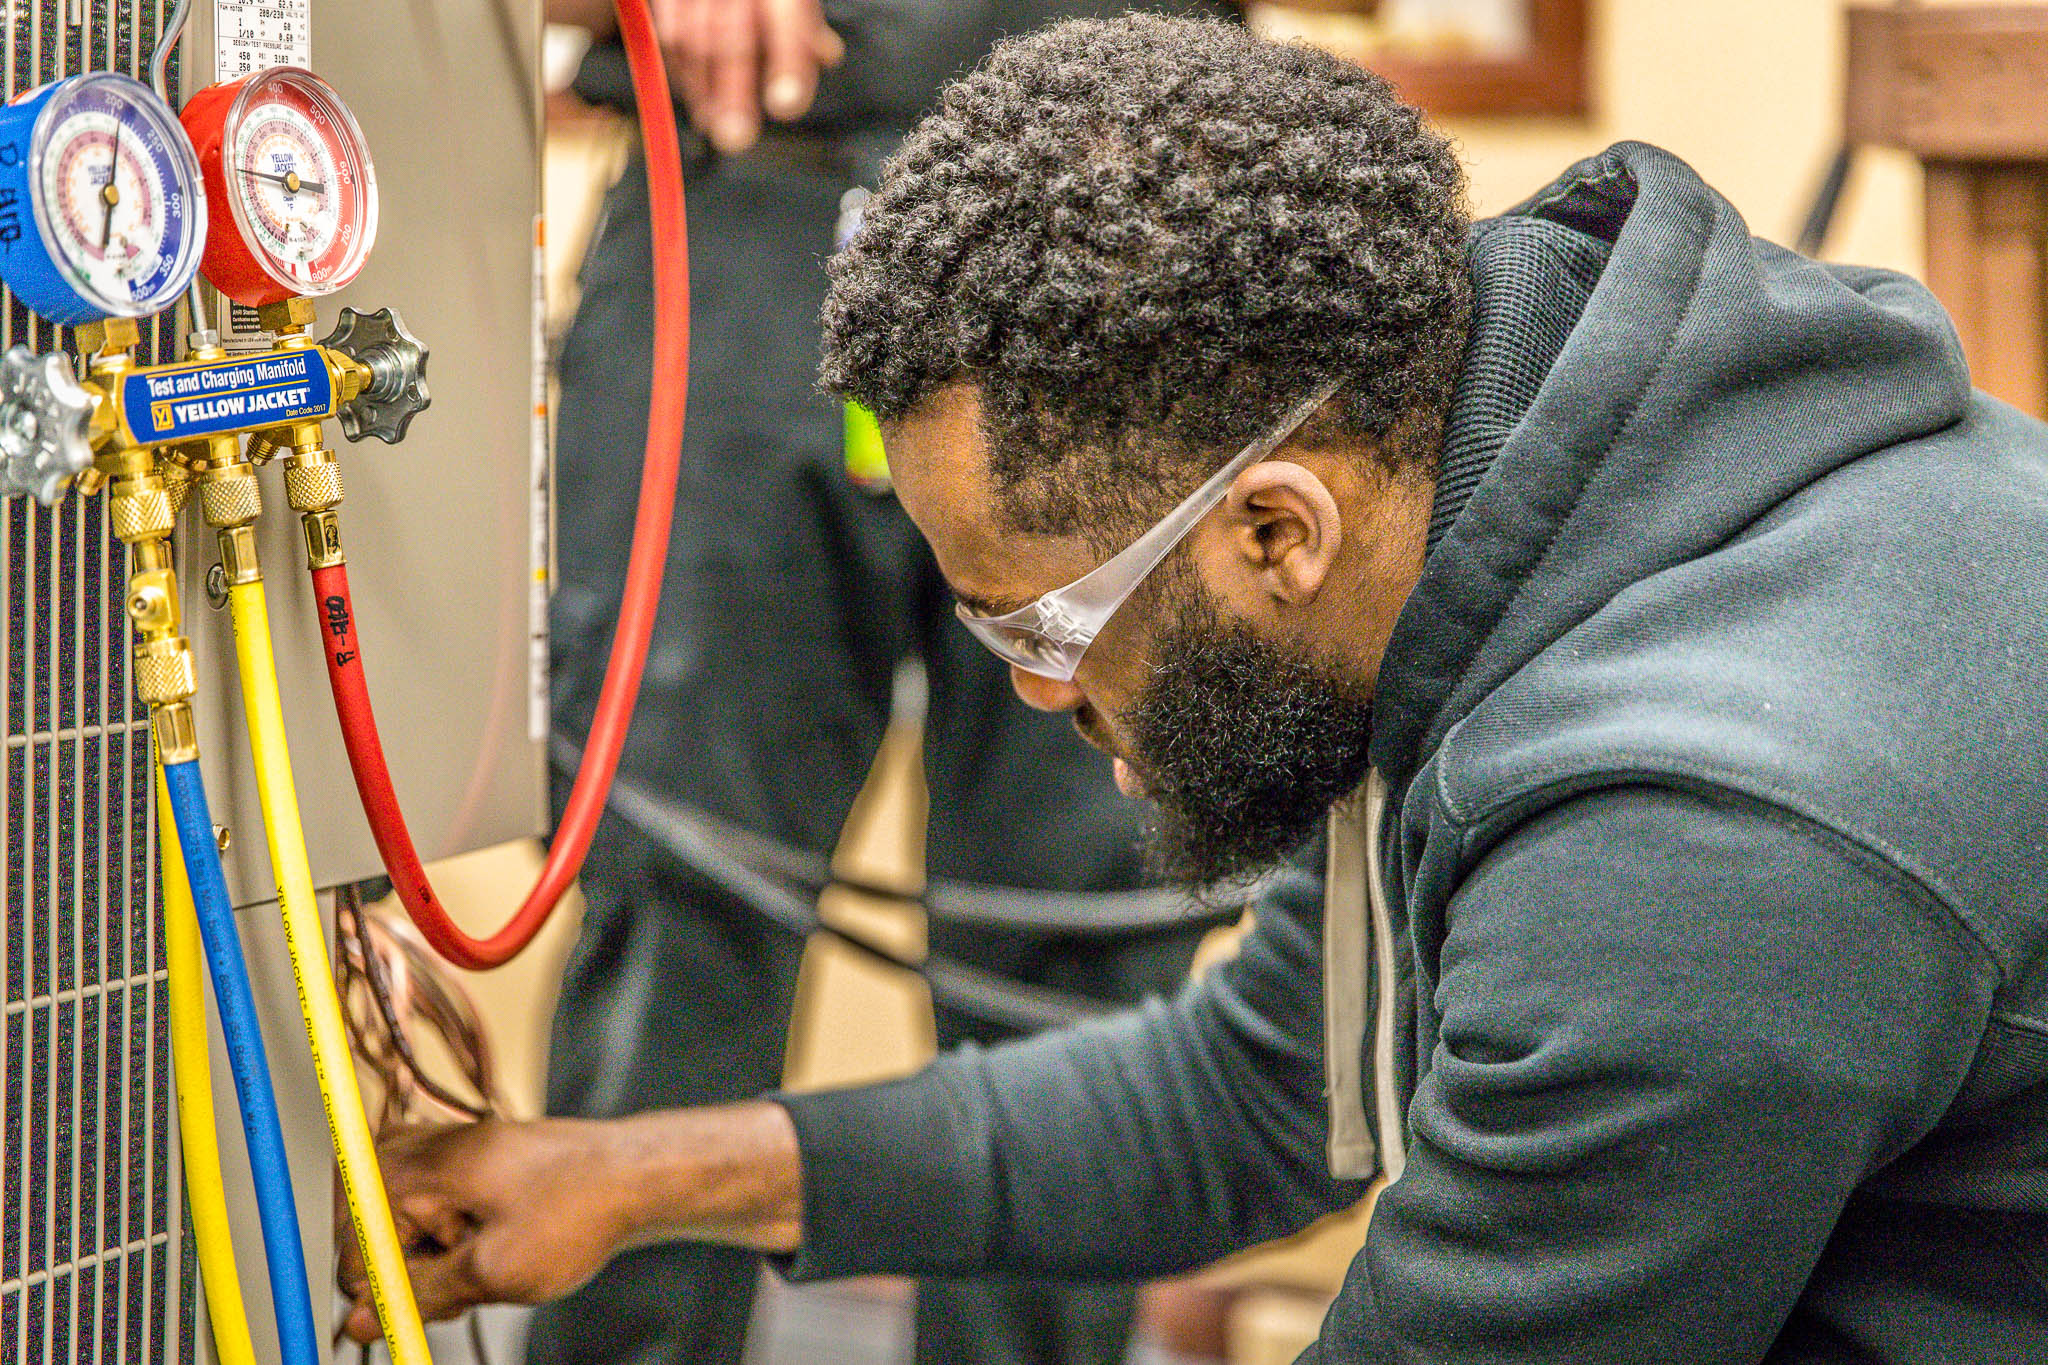 HEATING, RERIGERATION, VENTILATION, & AIR CONDITIONING TECHNOLOGY - This program is designed to provide graduates with the entry-level skills to install and repair as needed: Heating, air conditioning and residential refrigeration equipment. The program covers in practice and theory the HRVAC electrical requirements, diagnosing, repairing and installing HRVAC equipment systems, ductwork, metal fabricating and installation. Understanding of HRVAC parts and accessories